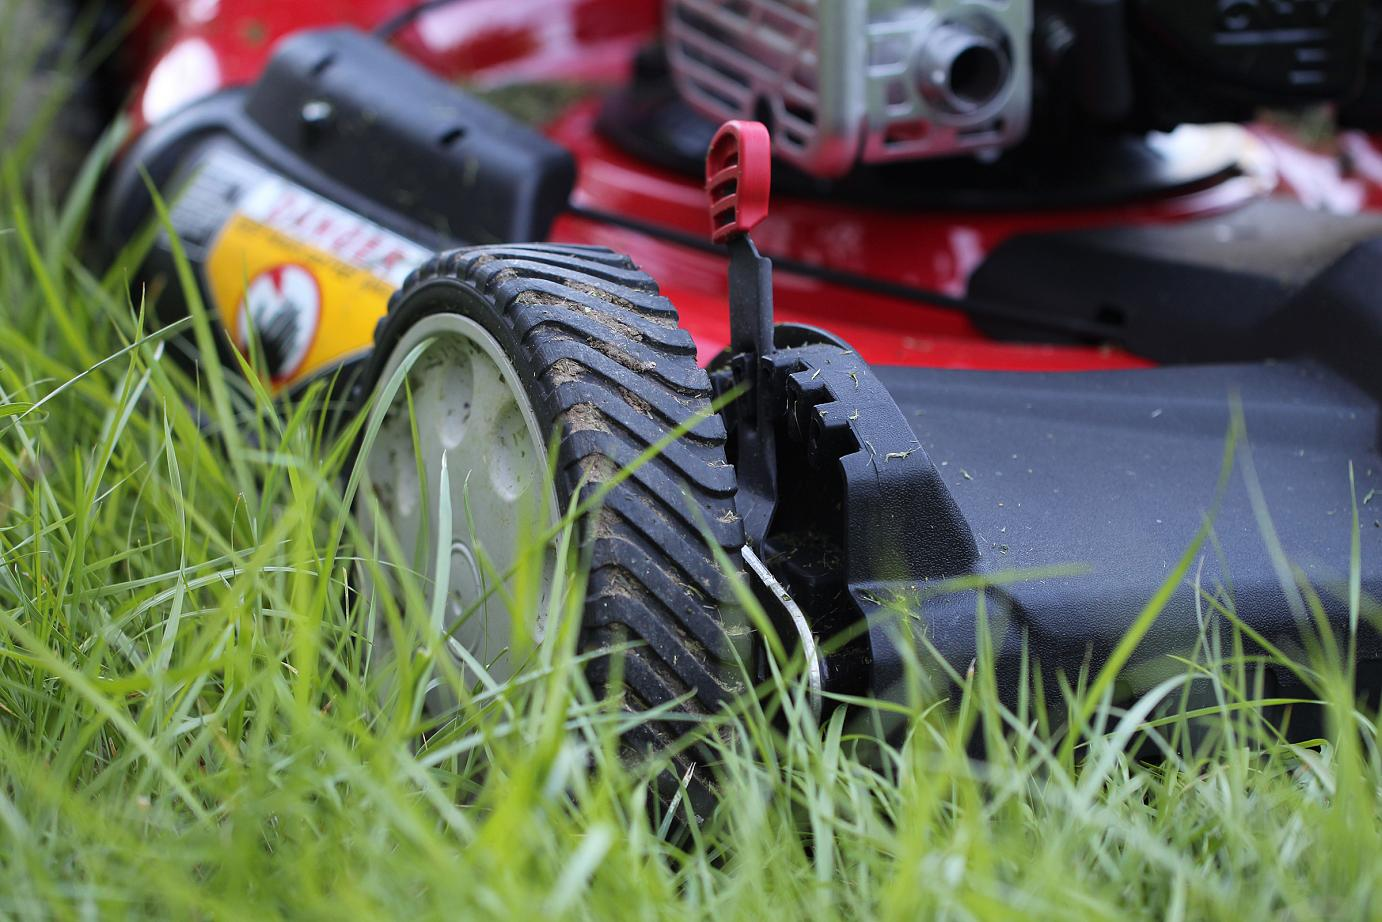 artificialgrass Do You Like To Mow The Lawn? Then You Better Think Twice Before You Do It